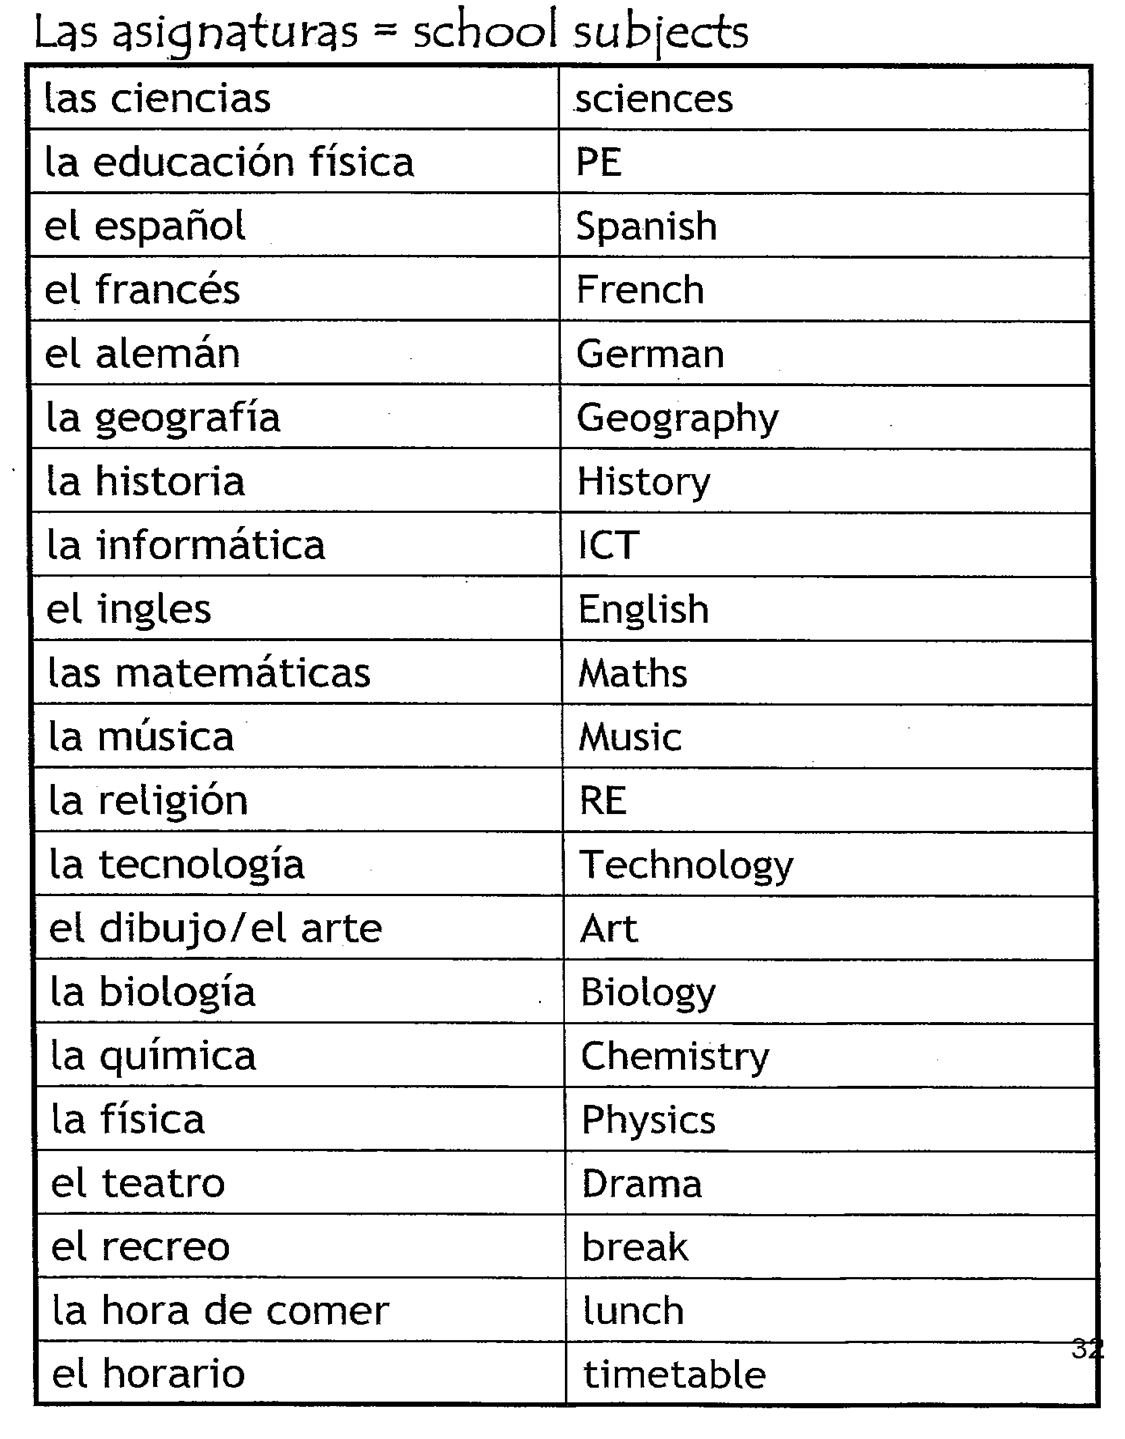 Archaeology list of school subjects in french and english